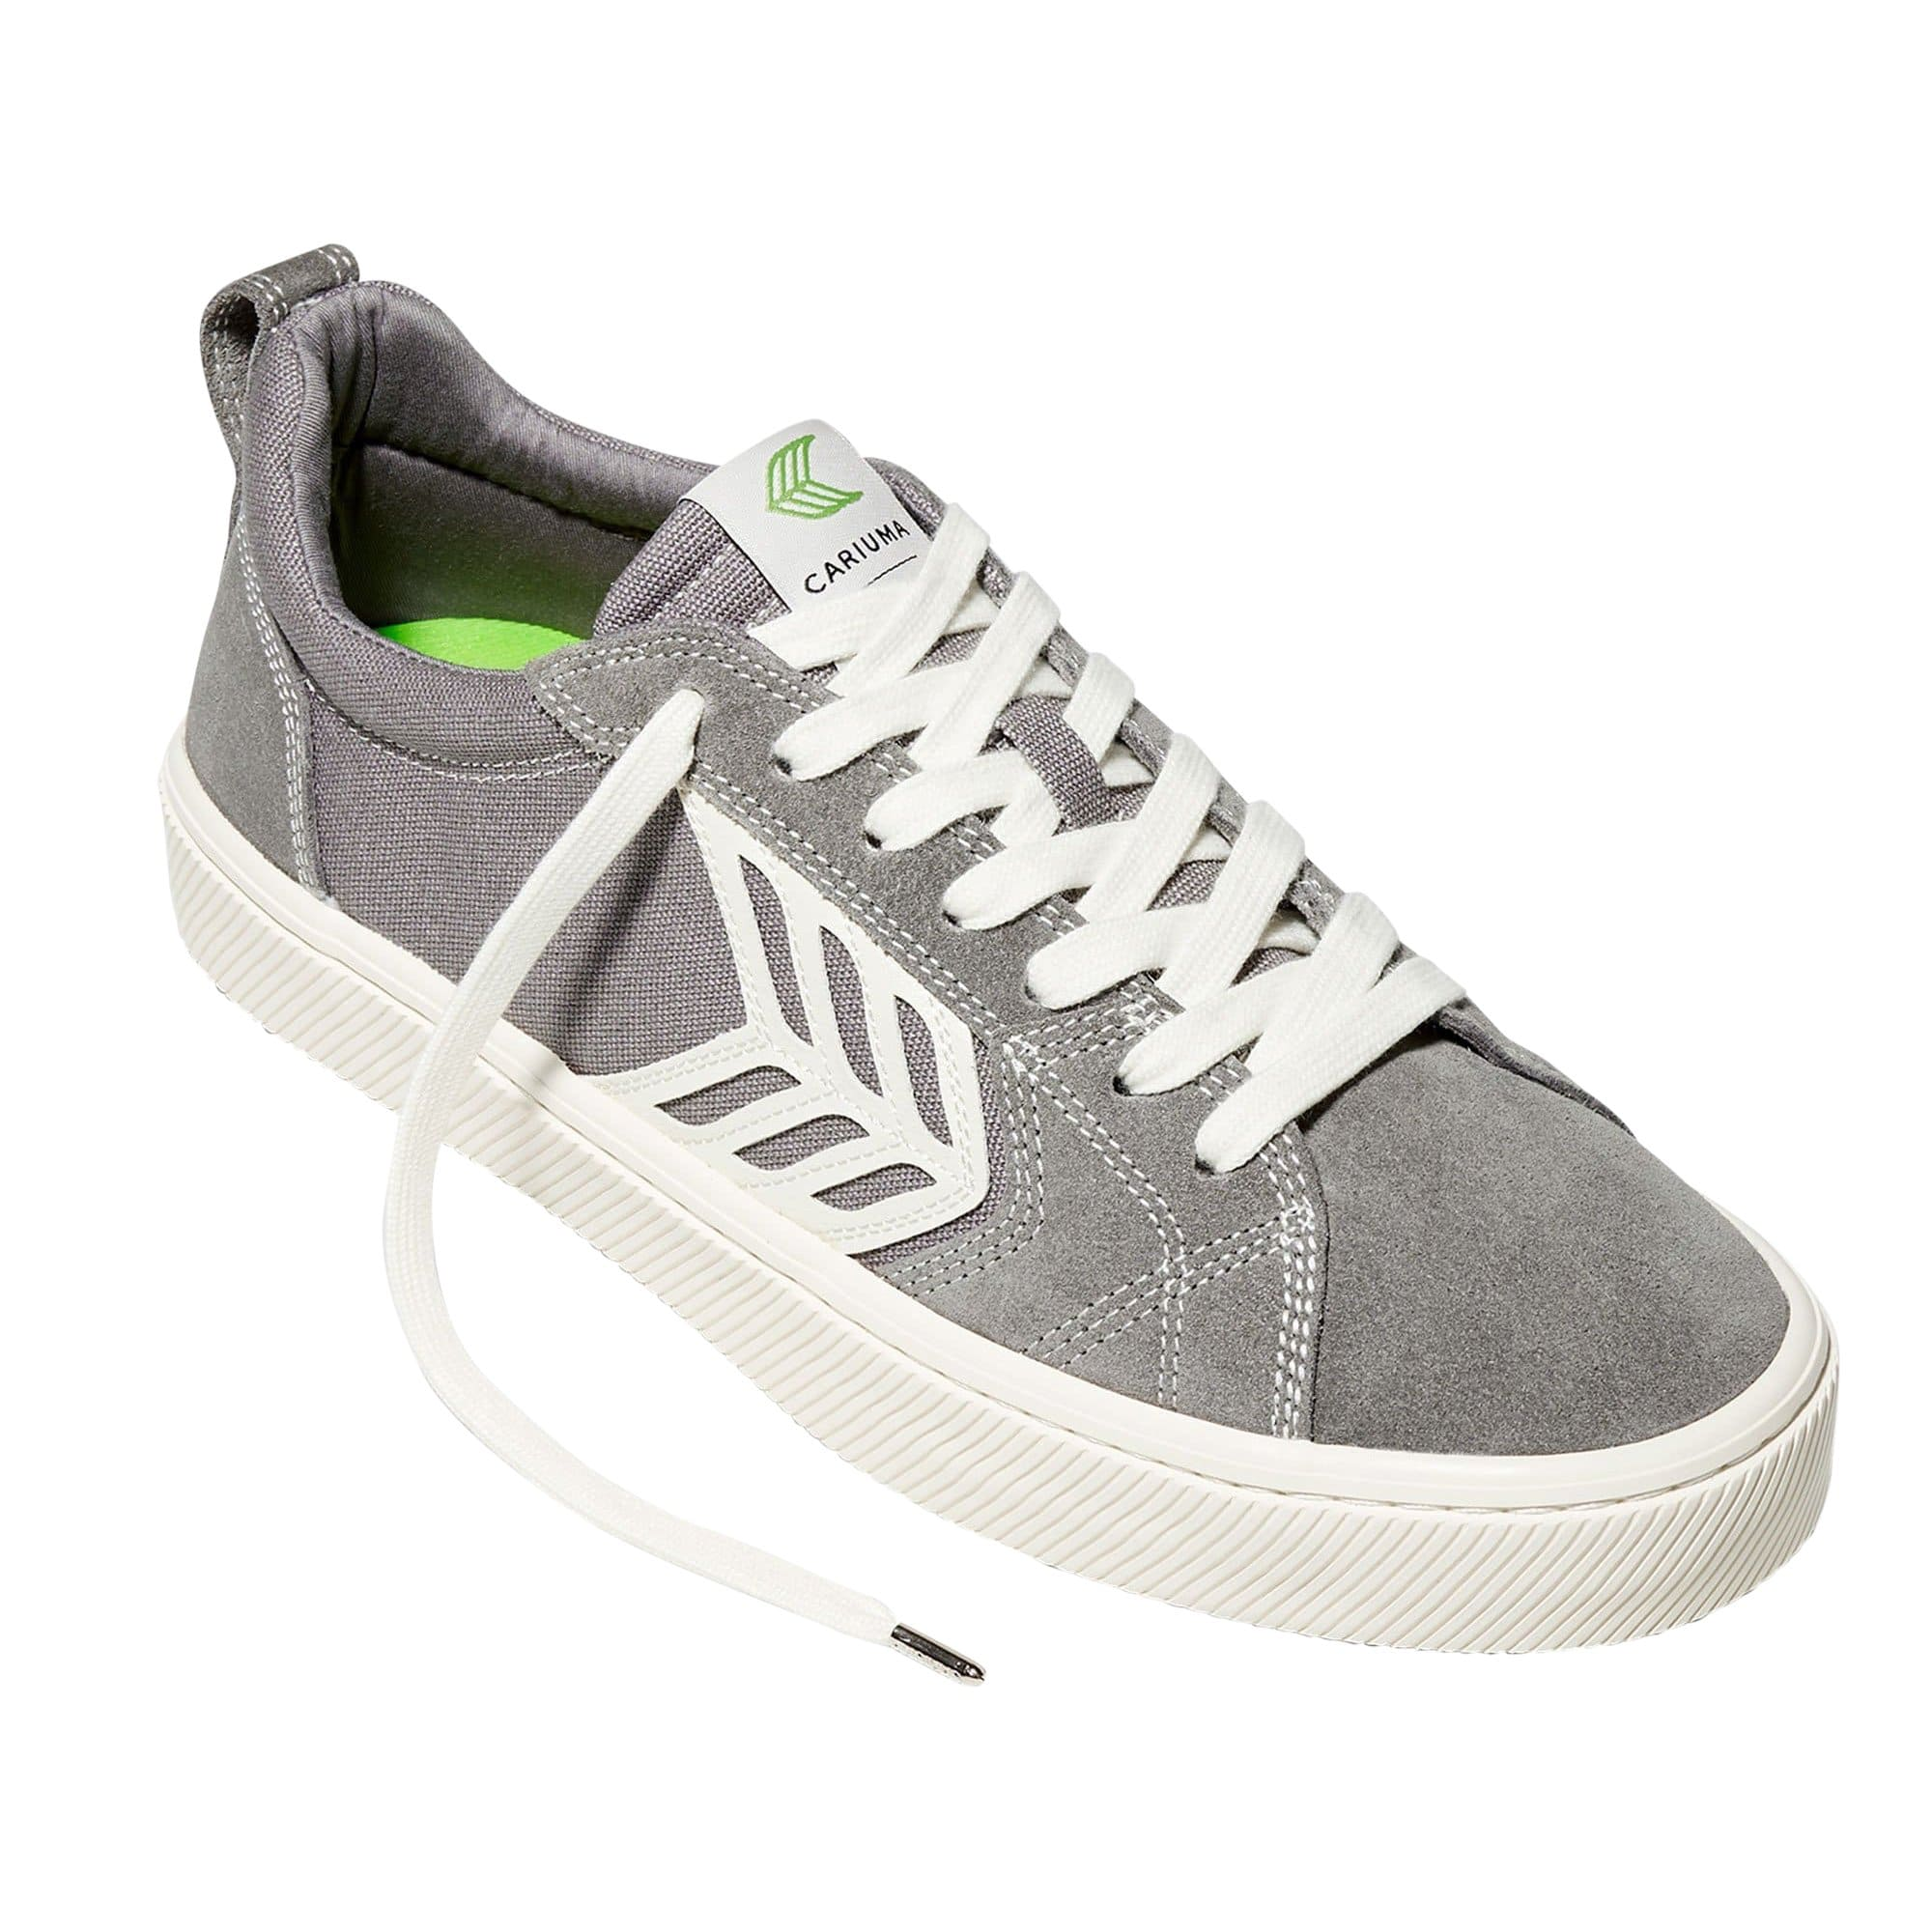 CATIBA PRO Skate Charcoal Grey Suede and Canvas Contrast Thread Ivory Logo Sneaker Men